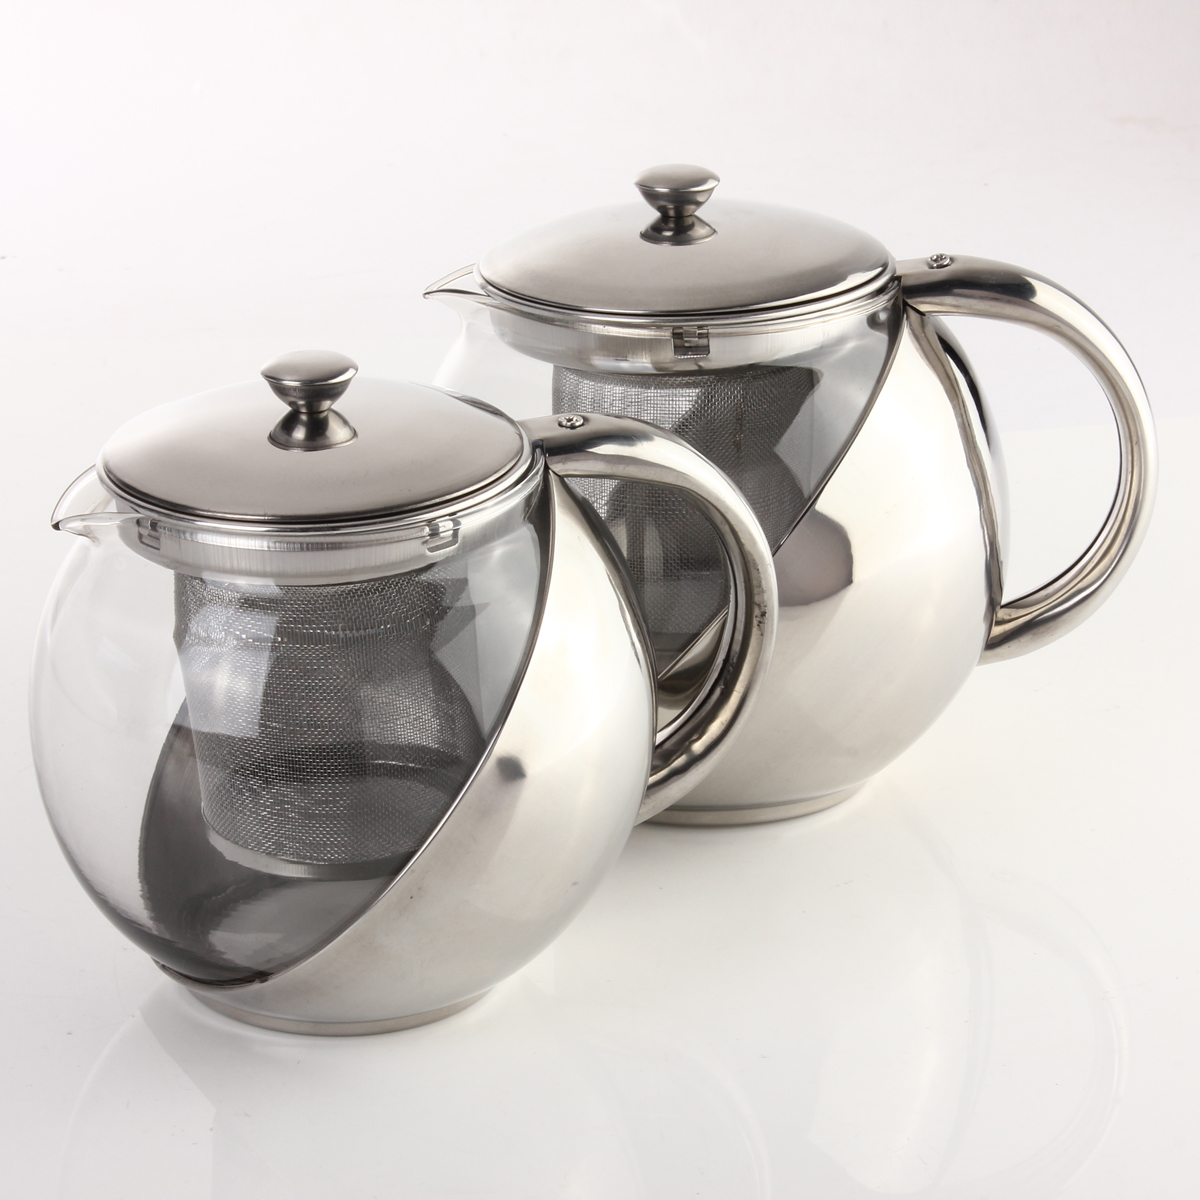 modern sylish stainless steel glass teapot with loose. Black Bedroom Furniture Sets. Home Design Ideas